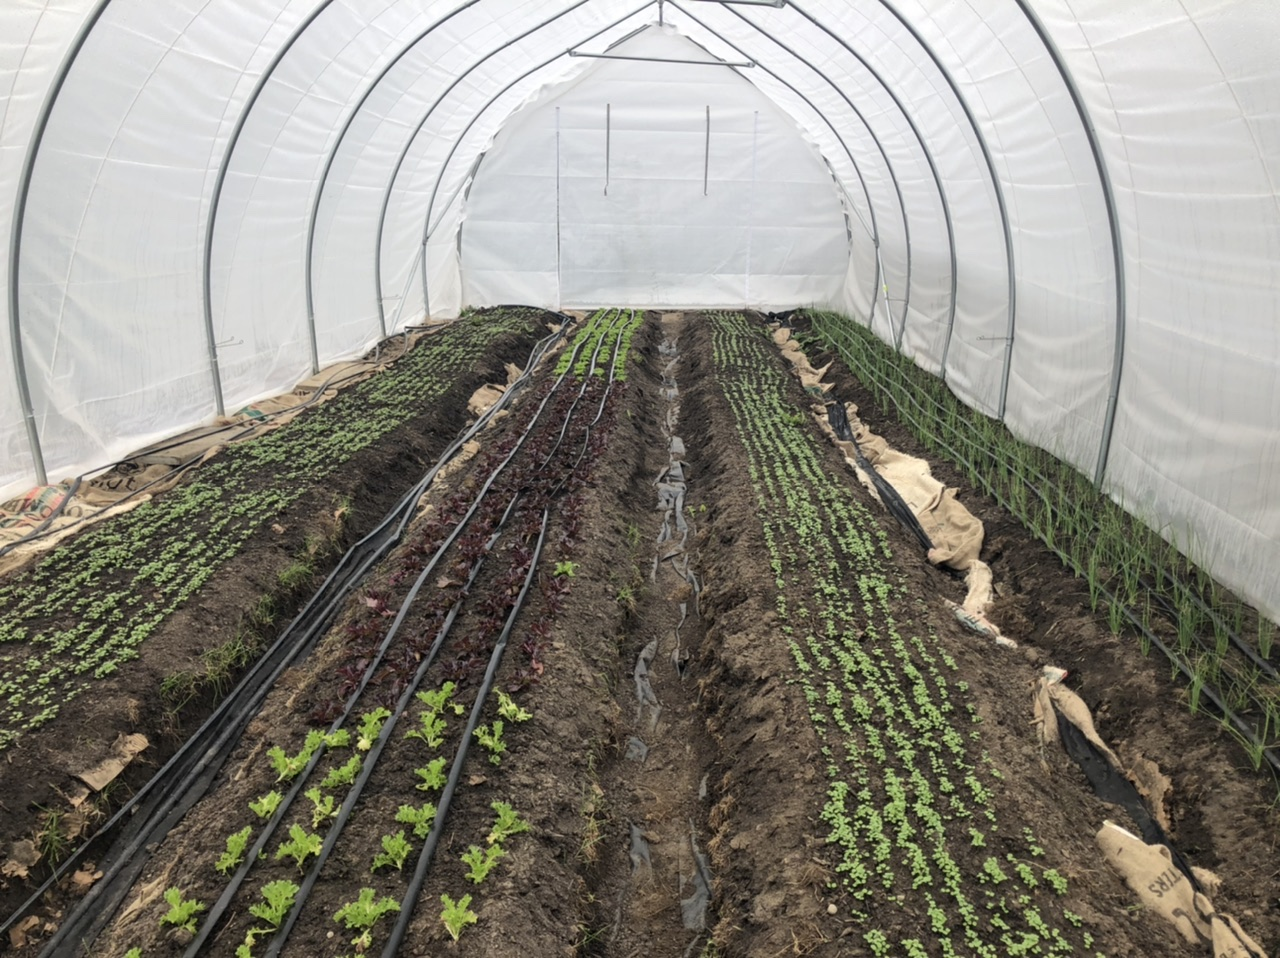 Farm Happenings for April 15, 2021